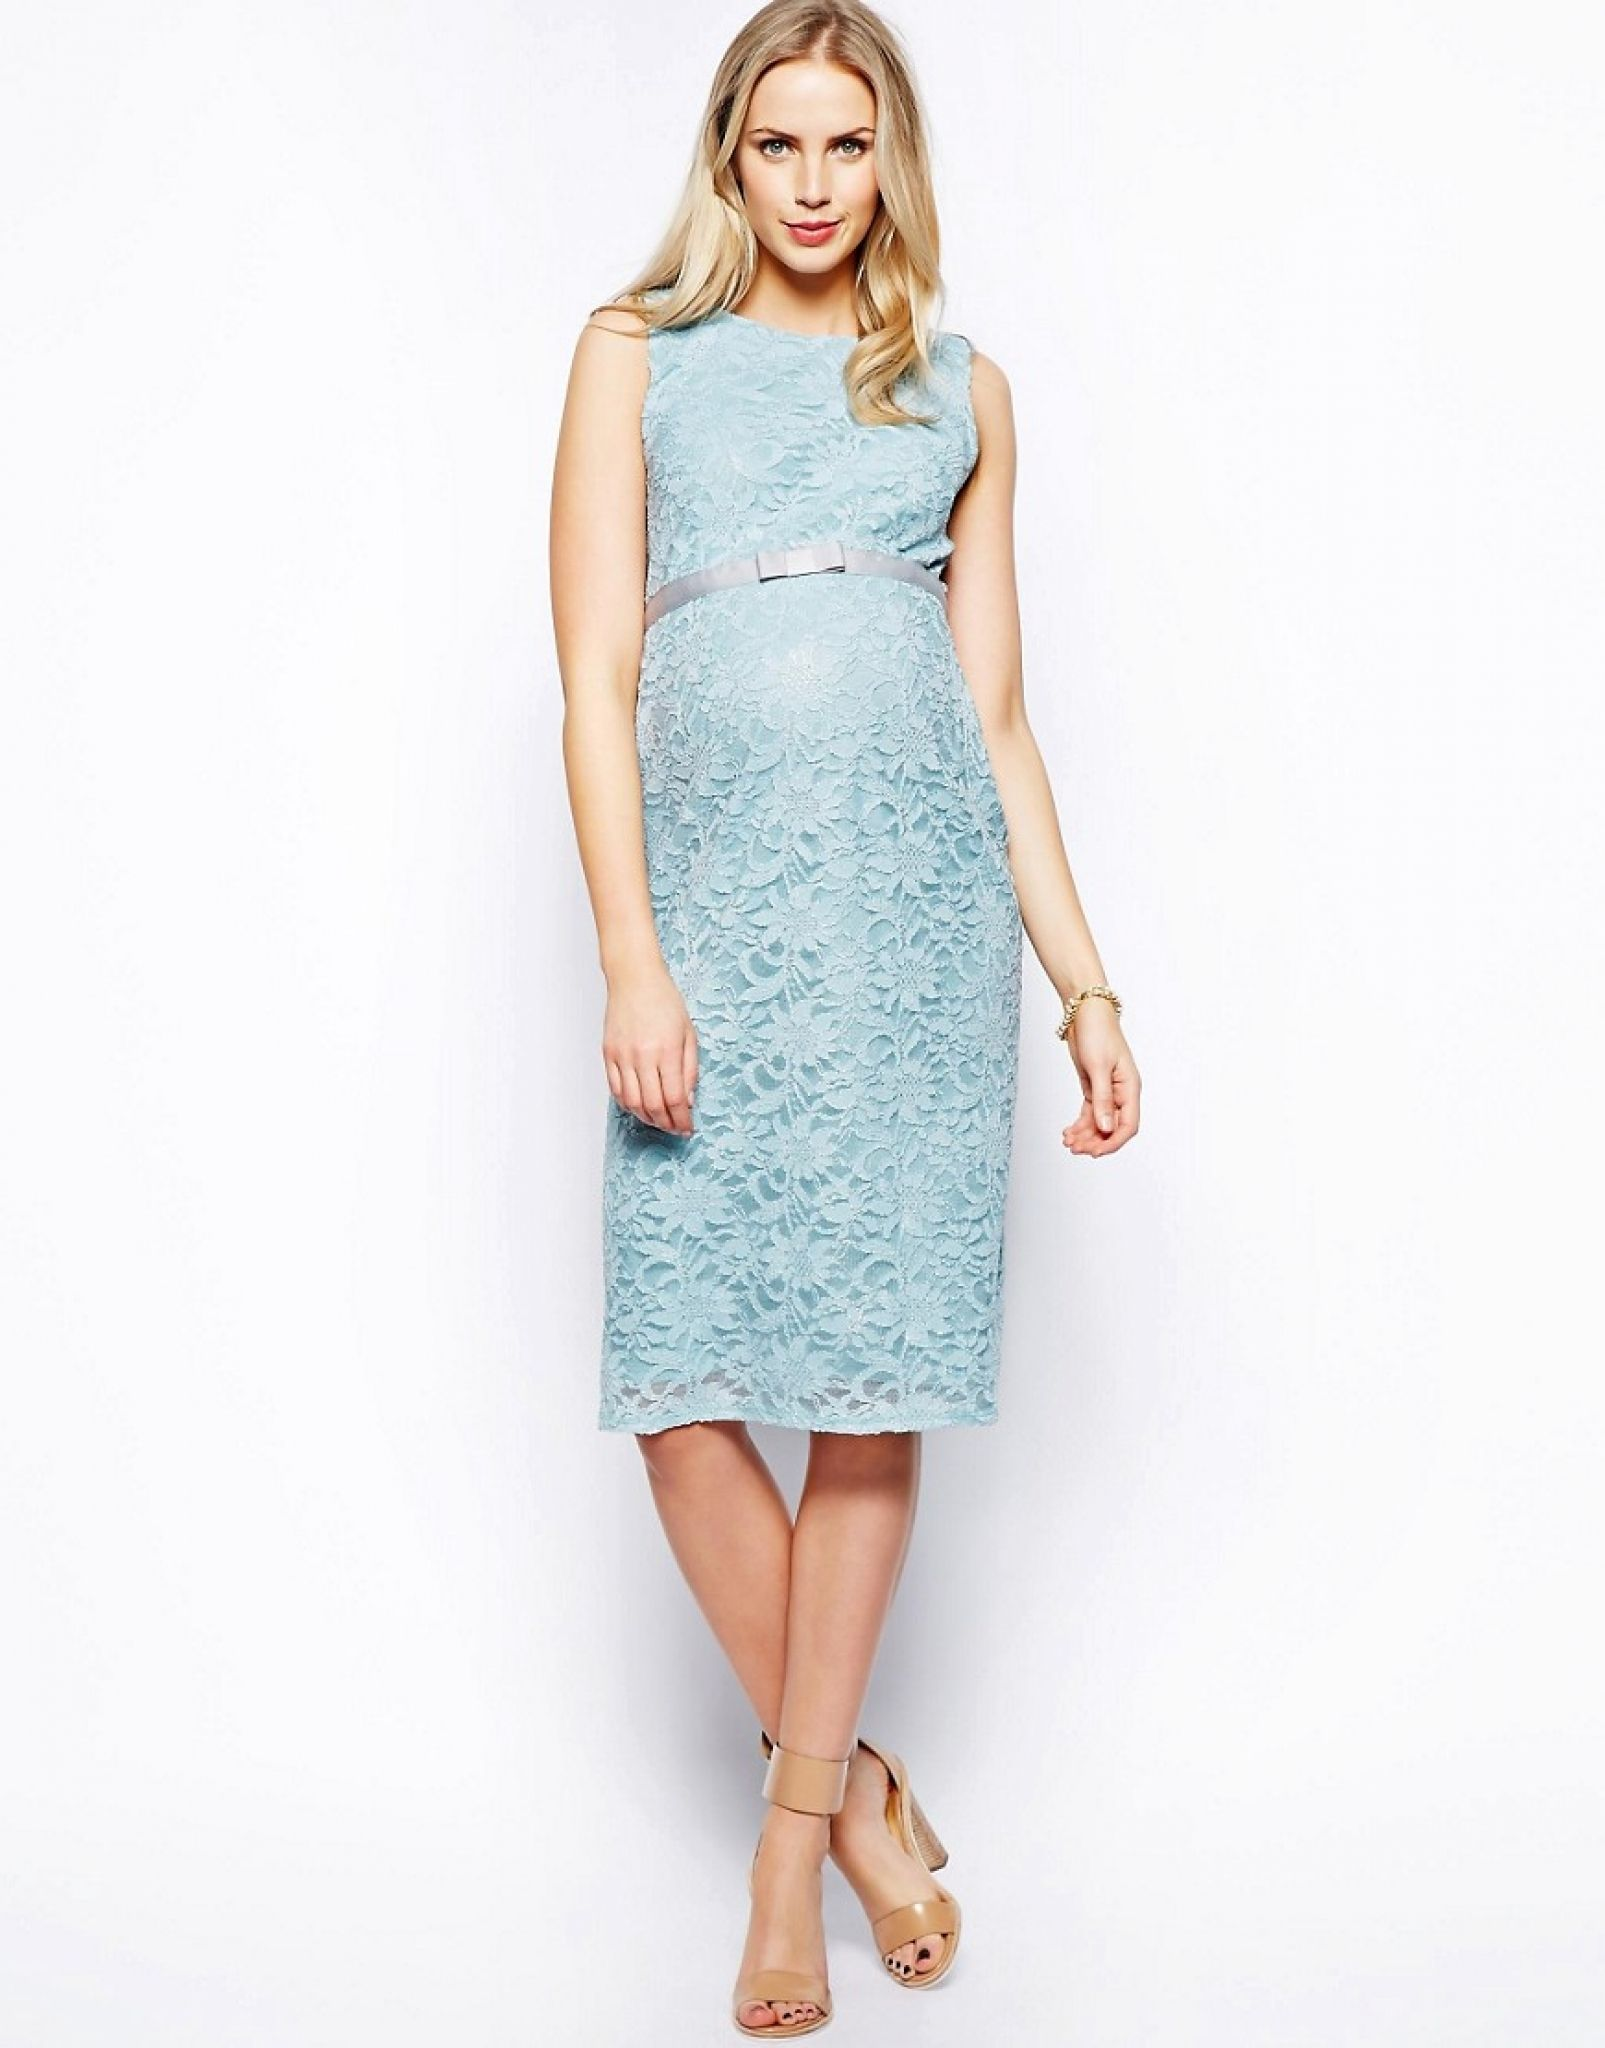 maternity dresses for wedding guests - country dresses for weddings ...